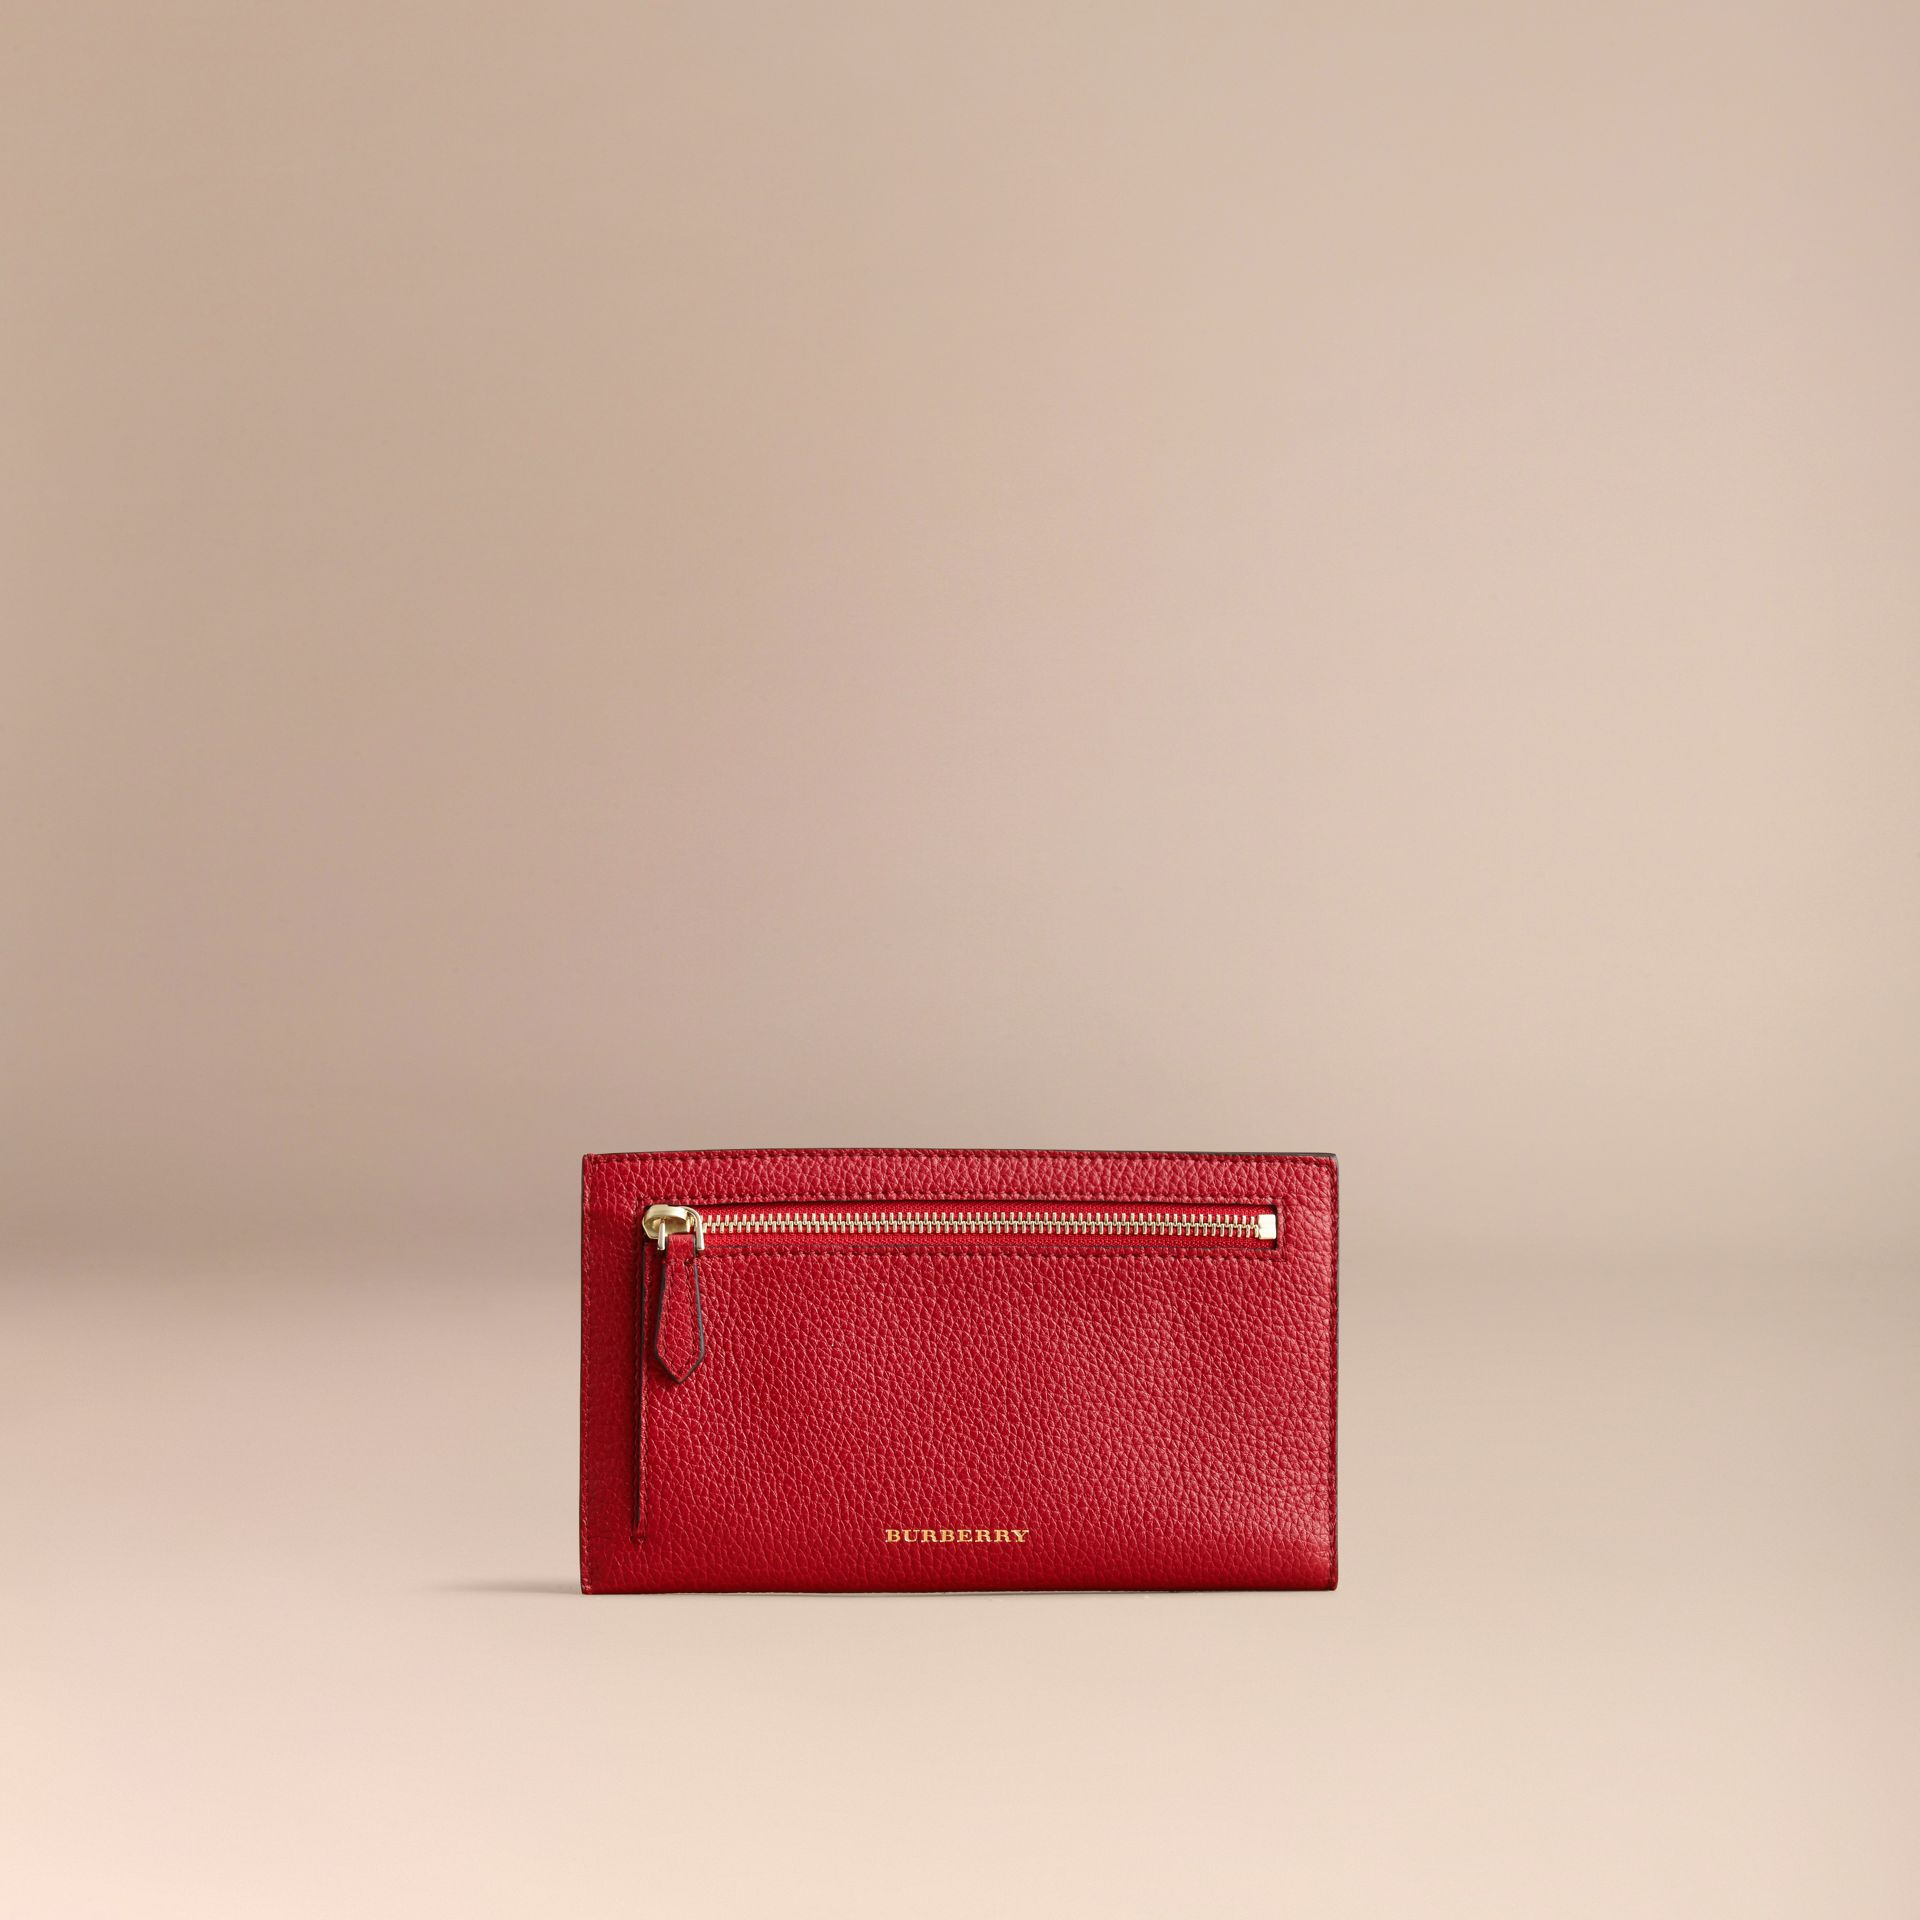 Grainy Leather Travel Case in Parade Red - Women | Burberry - gallery image 5